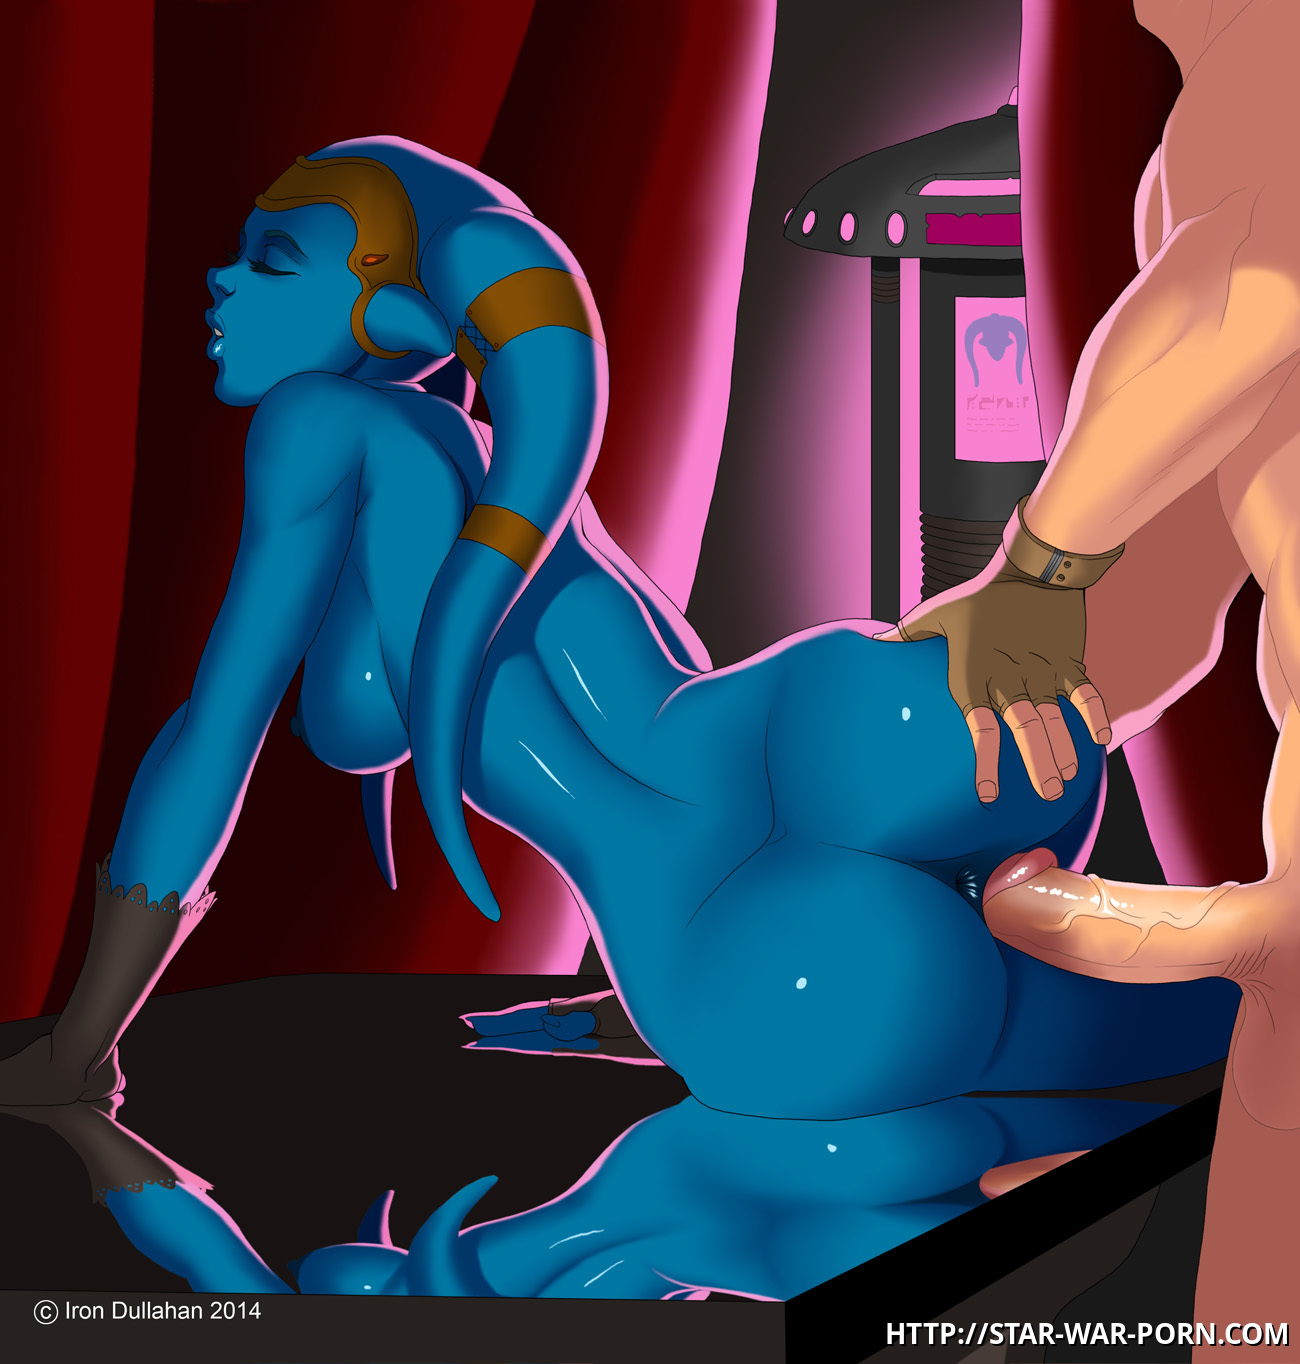 Nude jedi Aayla Secura gets boinked from behind!